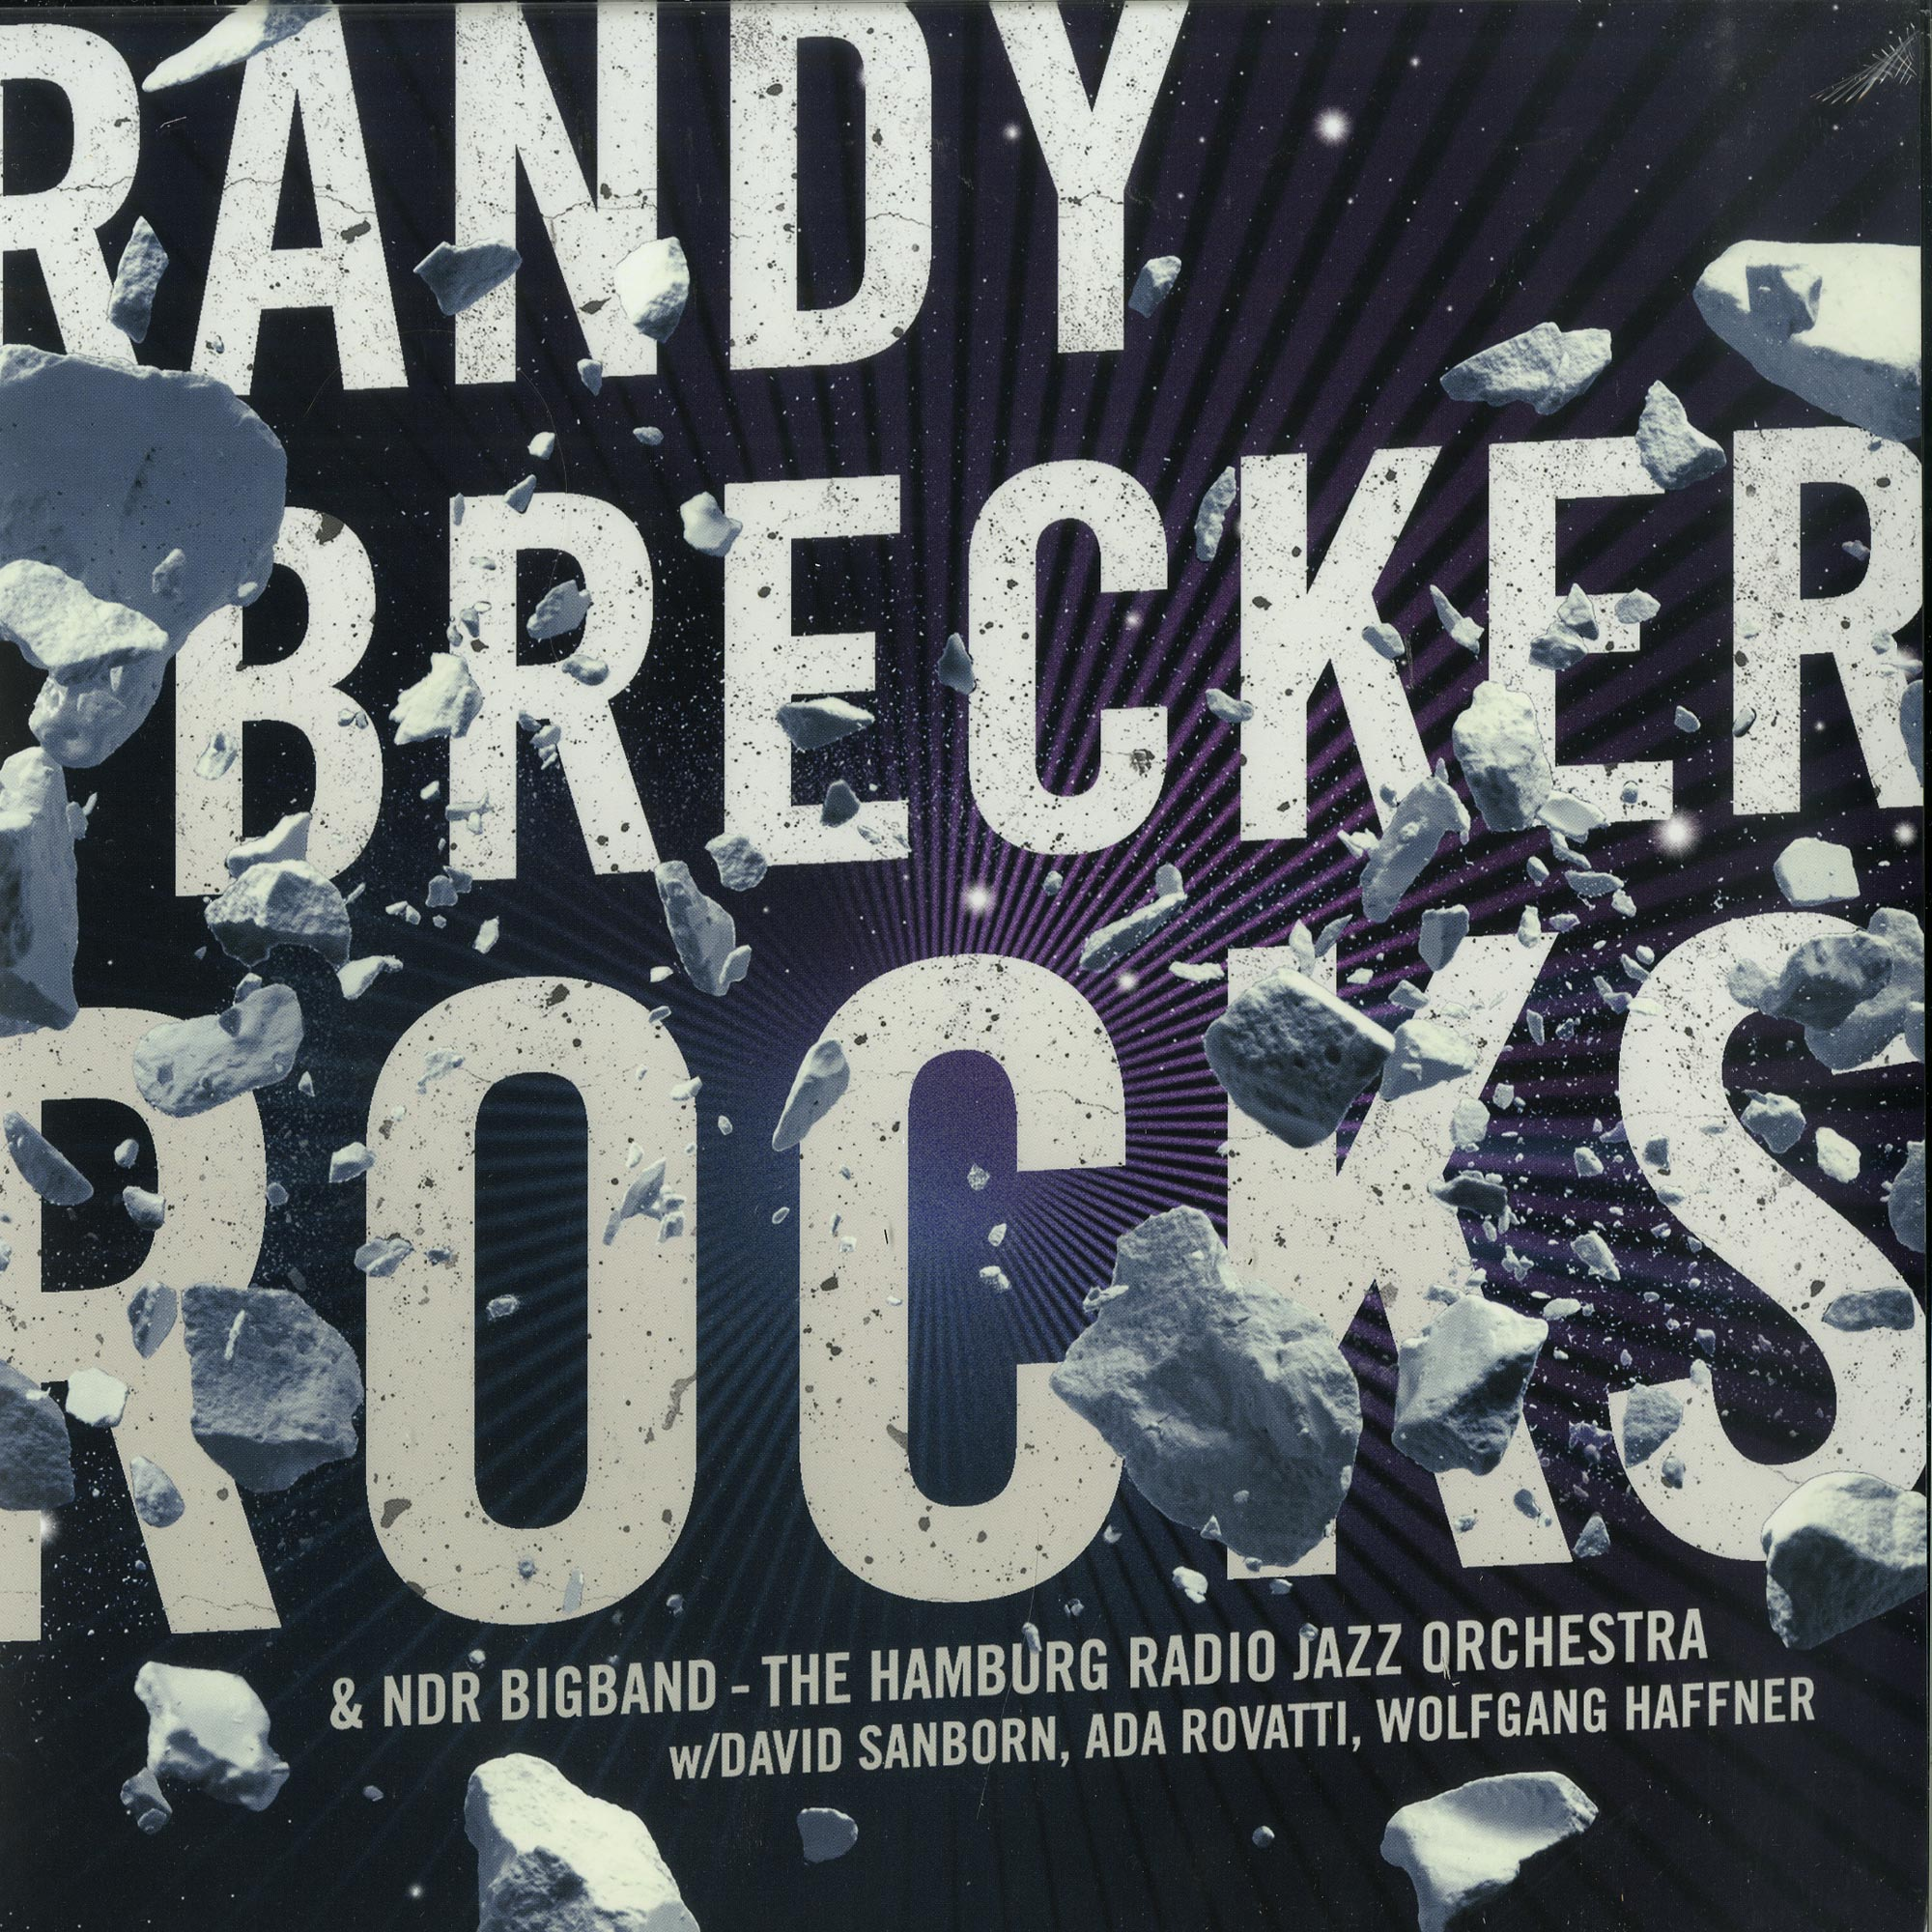 Randy Brecker & NDR Bigband - ROCKS